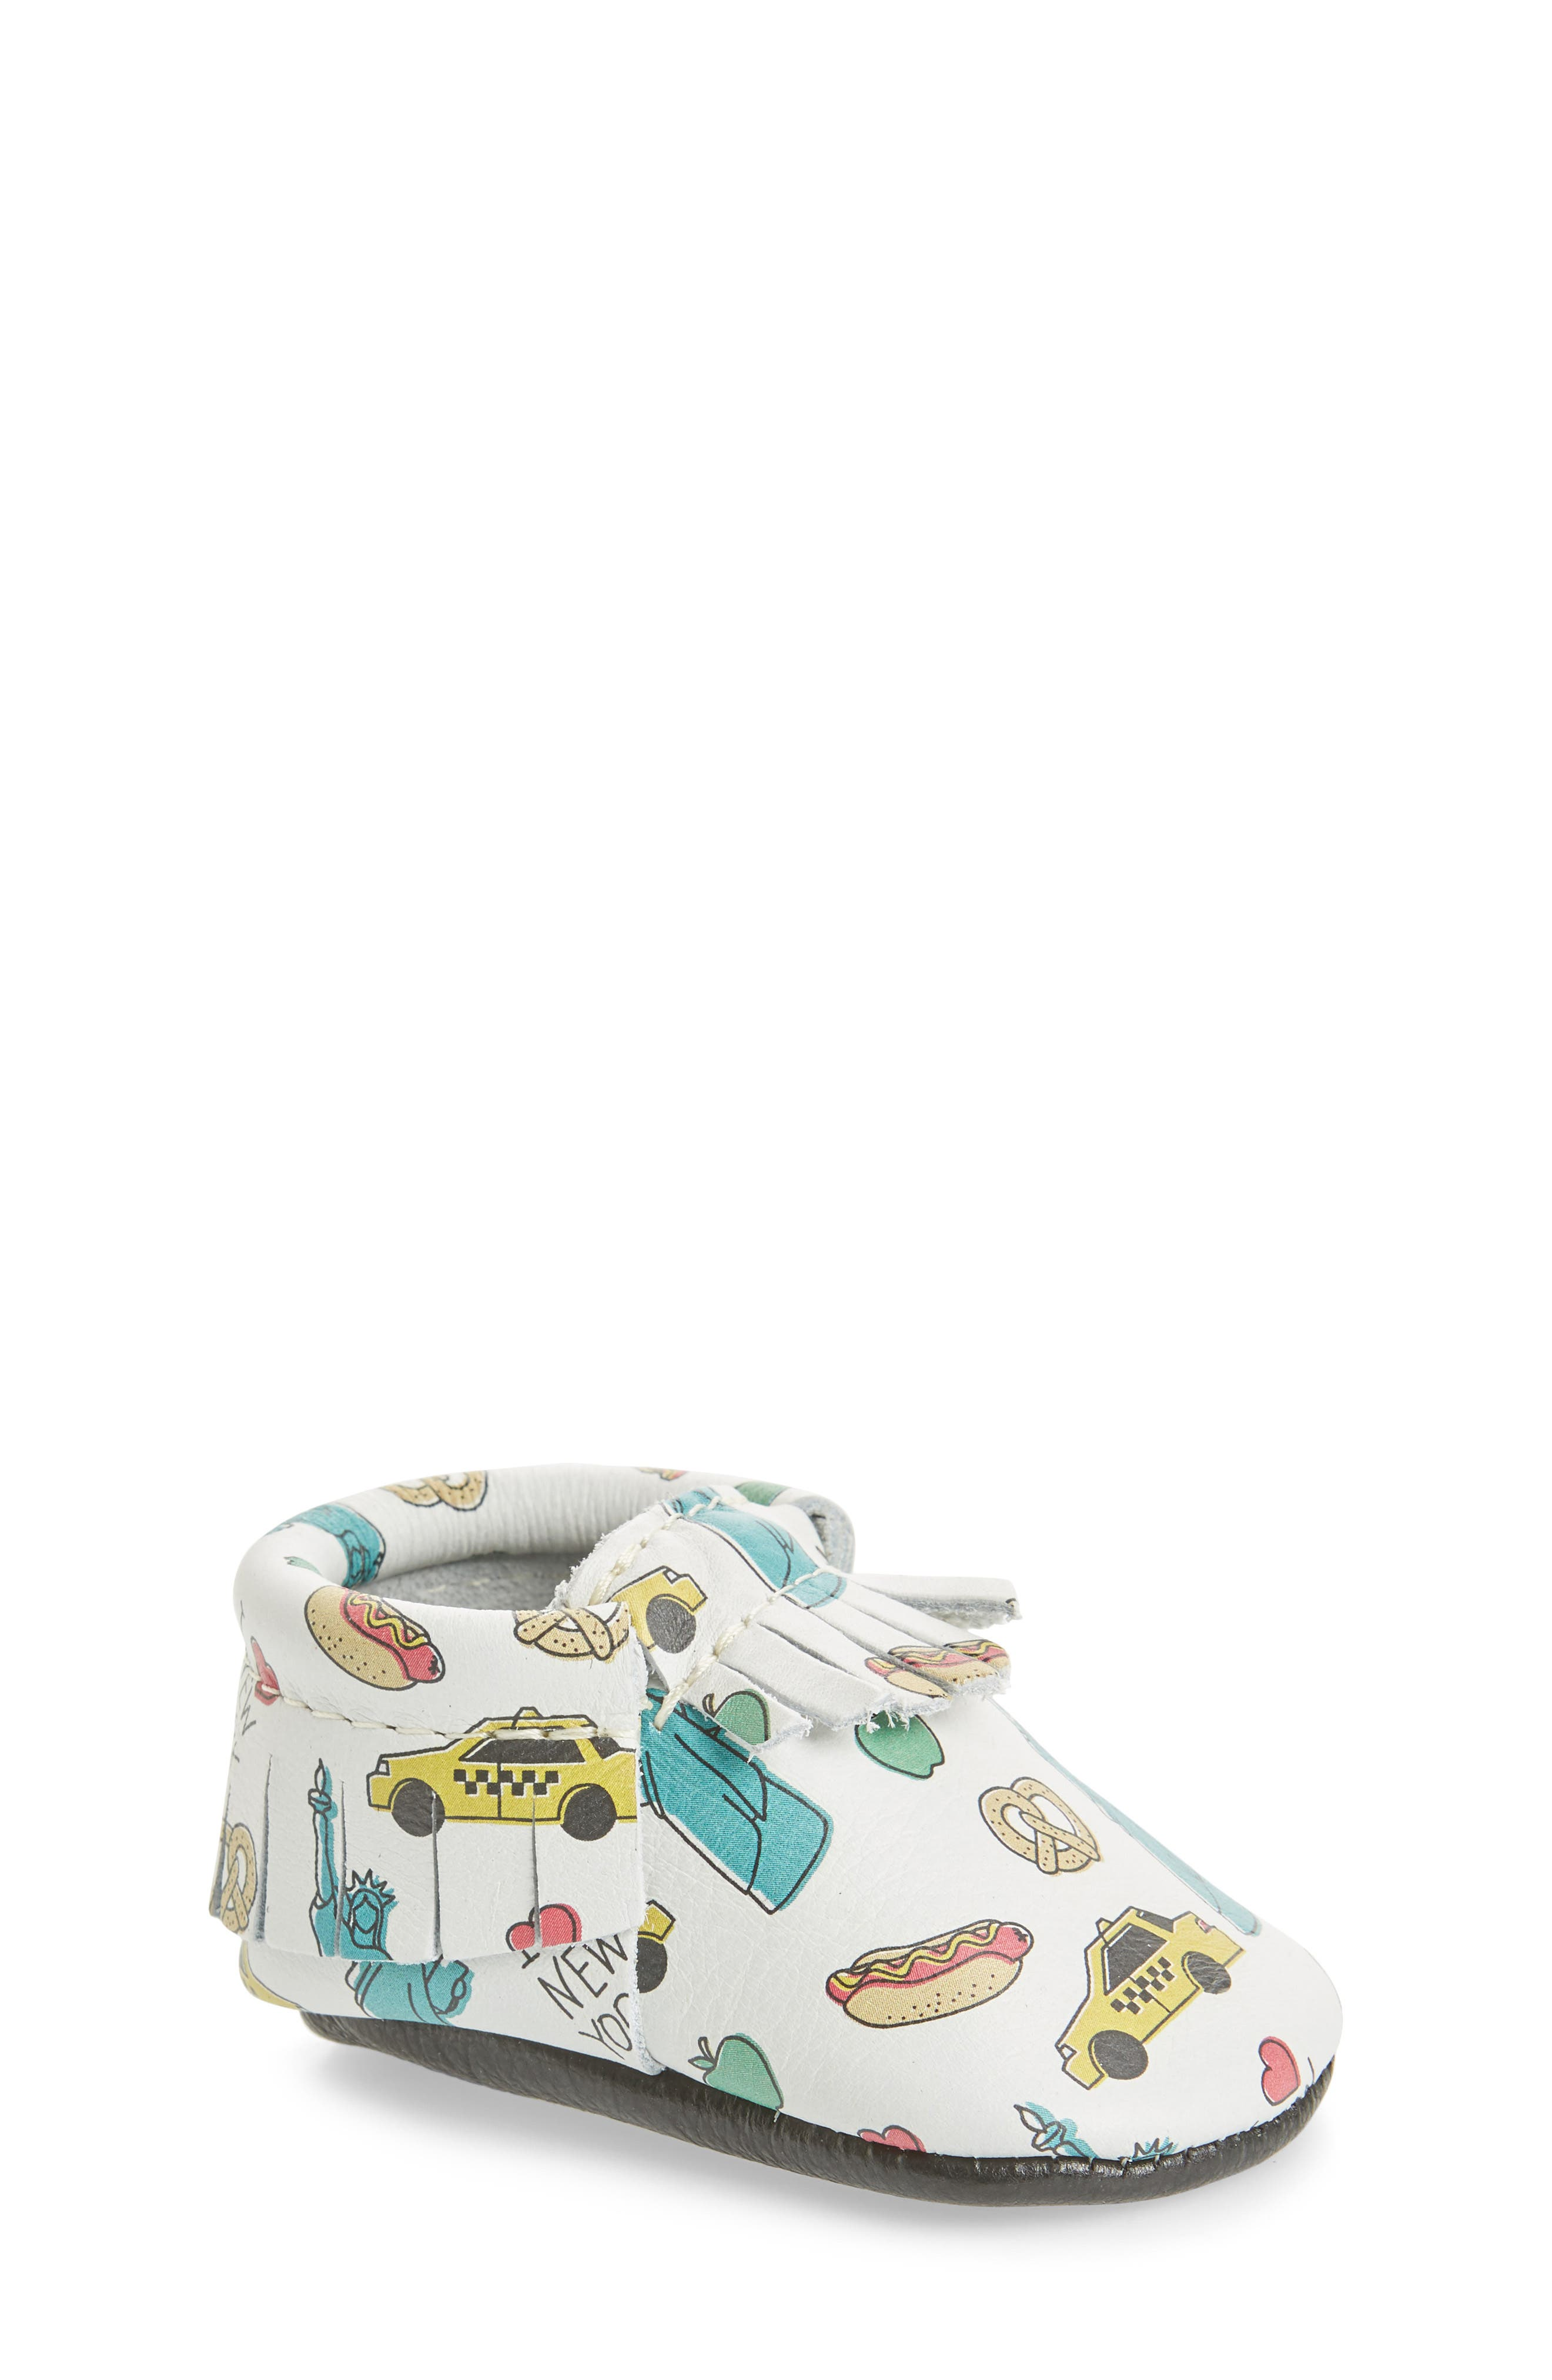 Big Apple Moccasin Bootie,                         Main,                         color, PRINT LEATHER